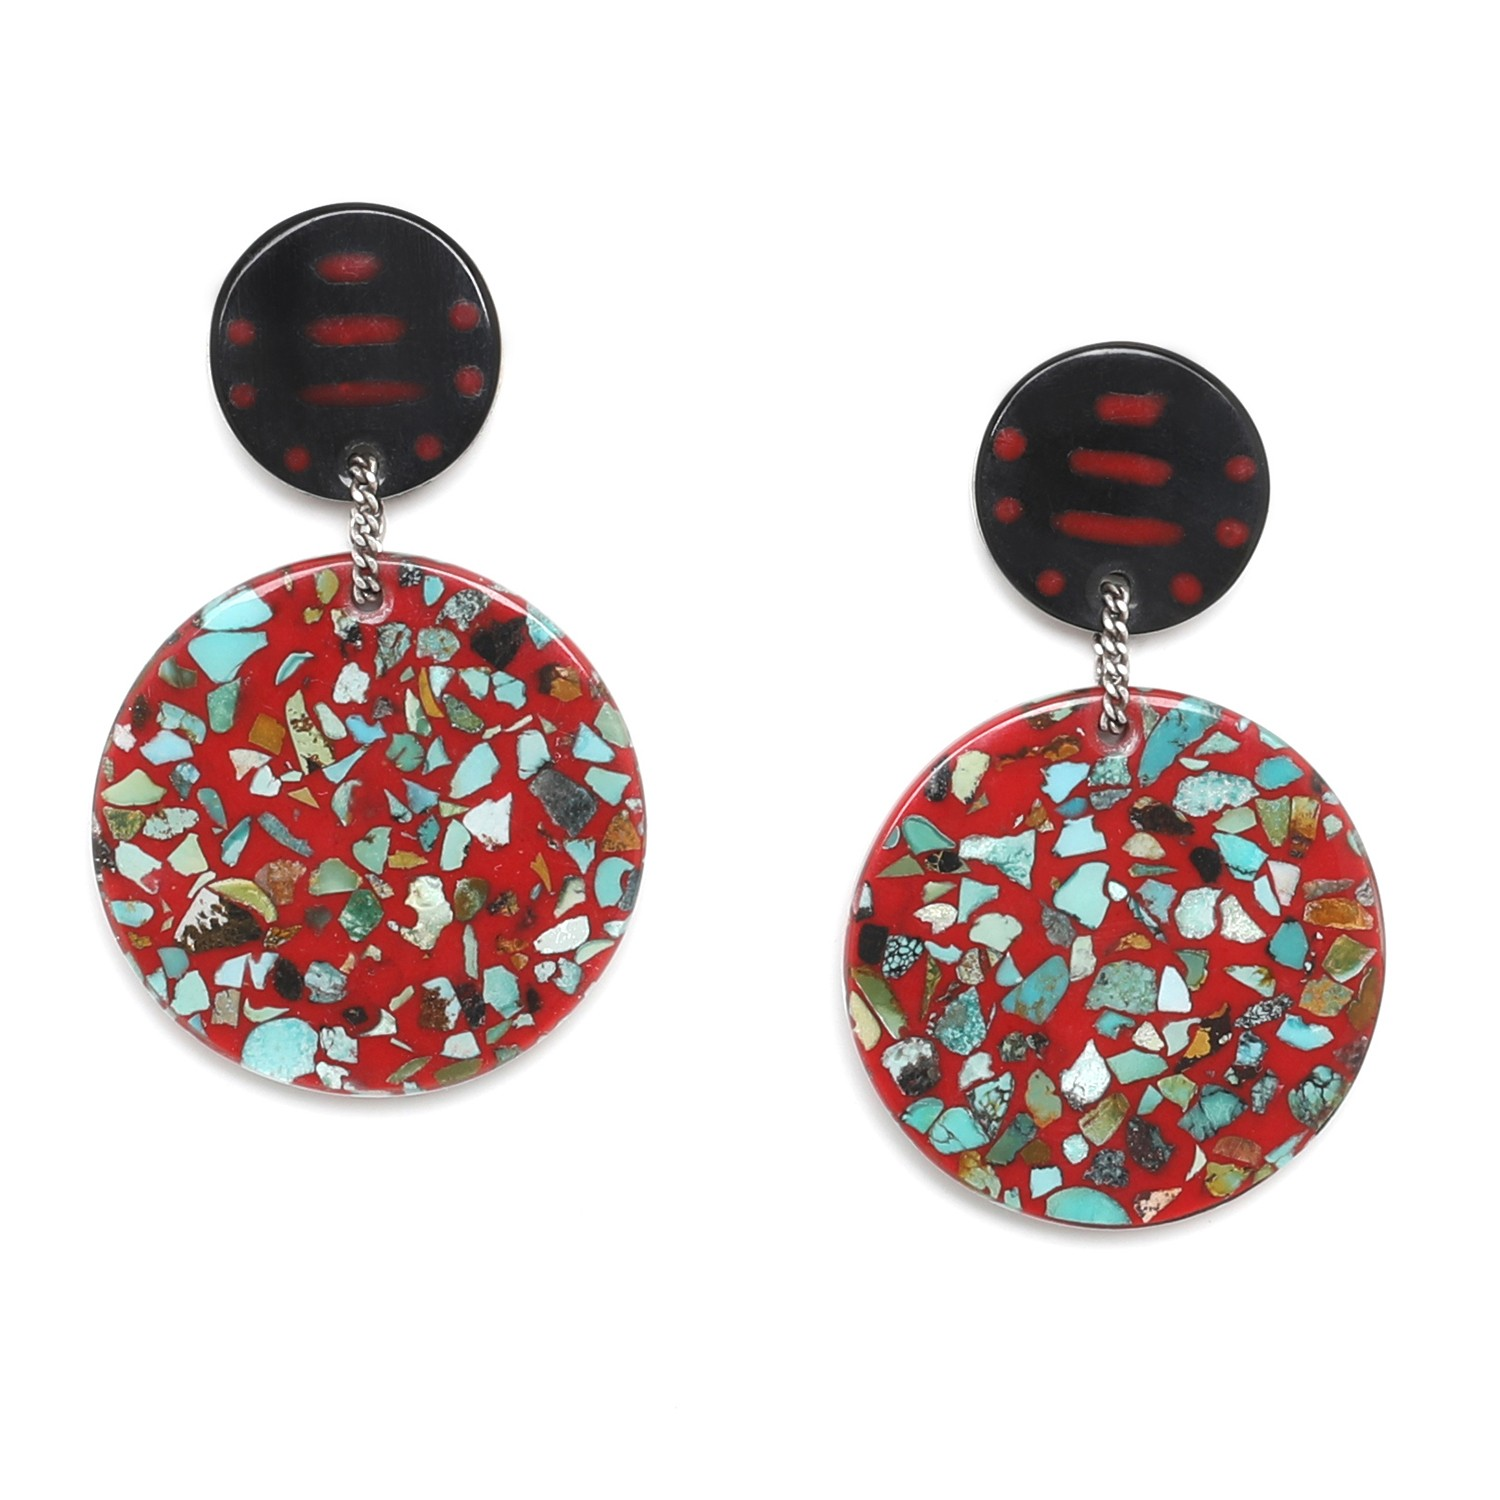 SAGARMATHA gypsy earrings